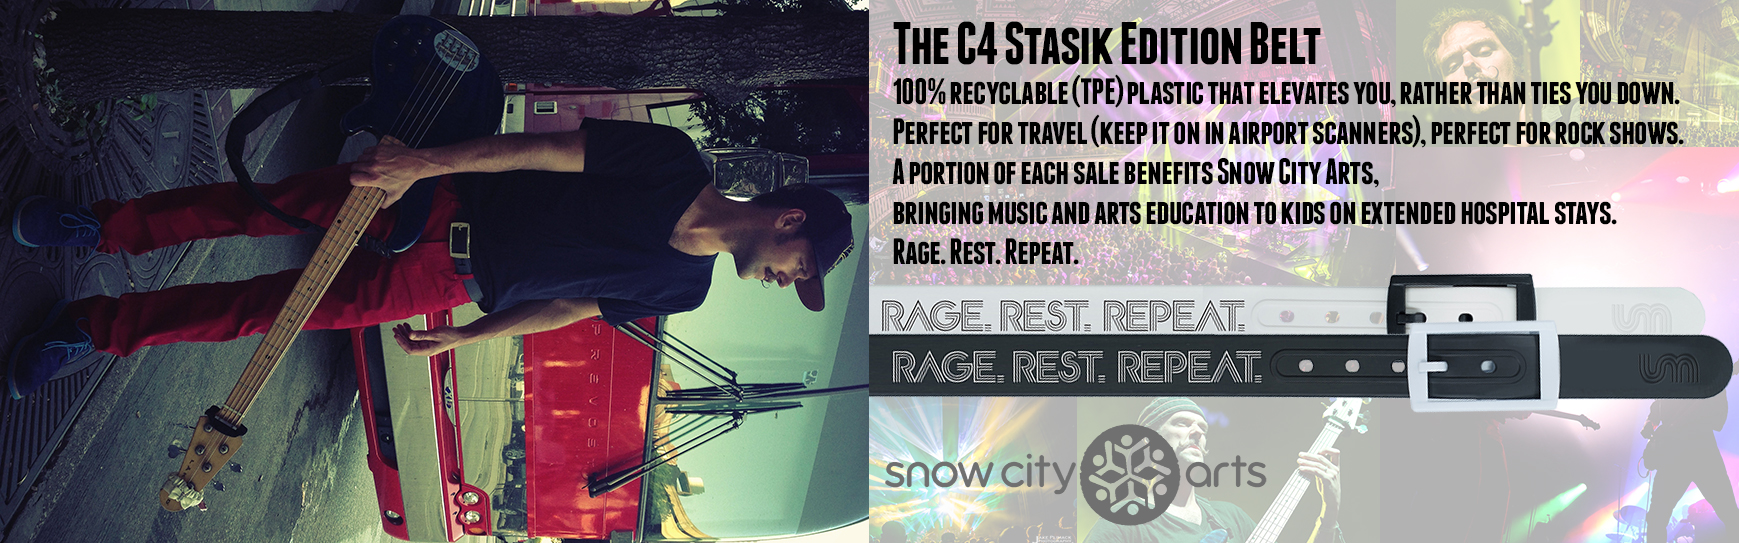 C4 Belt Ryan Stasik Edition